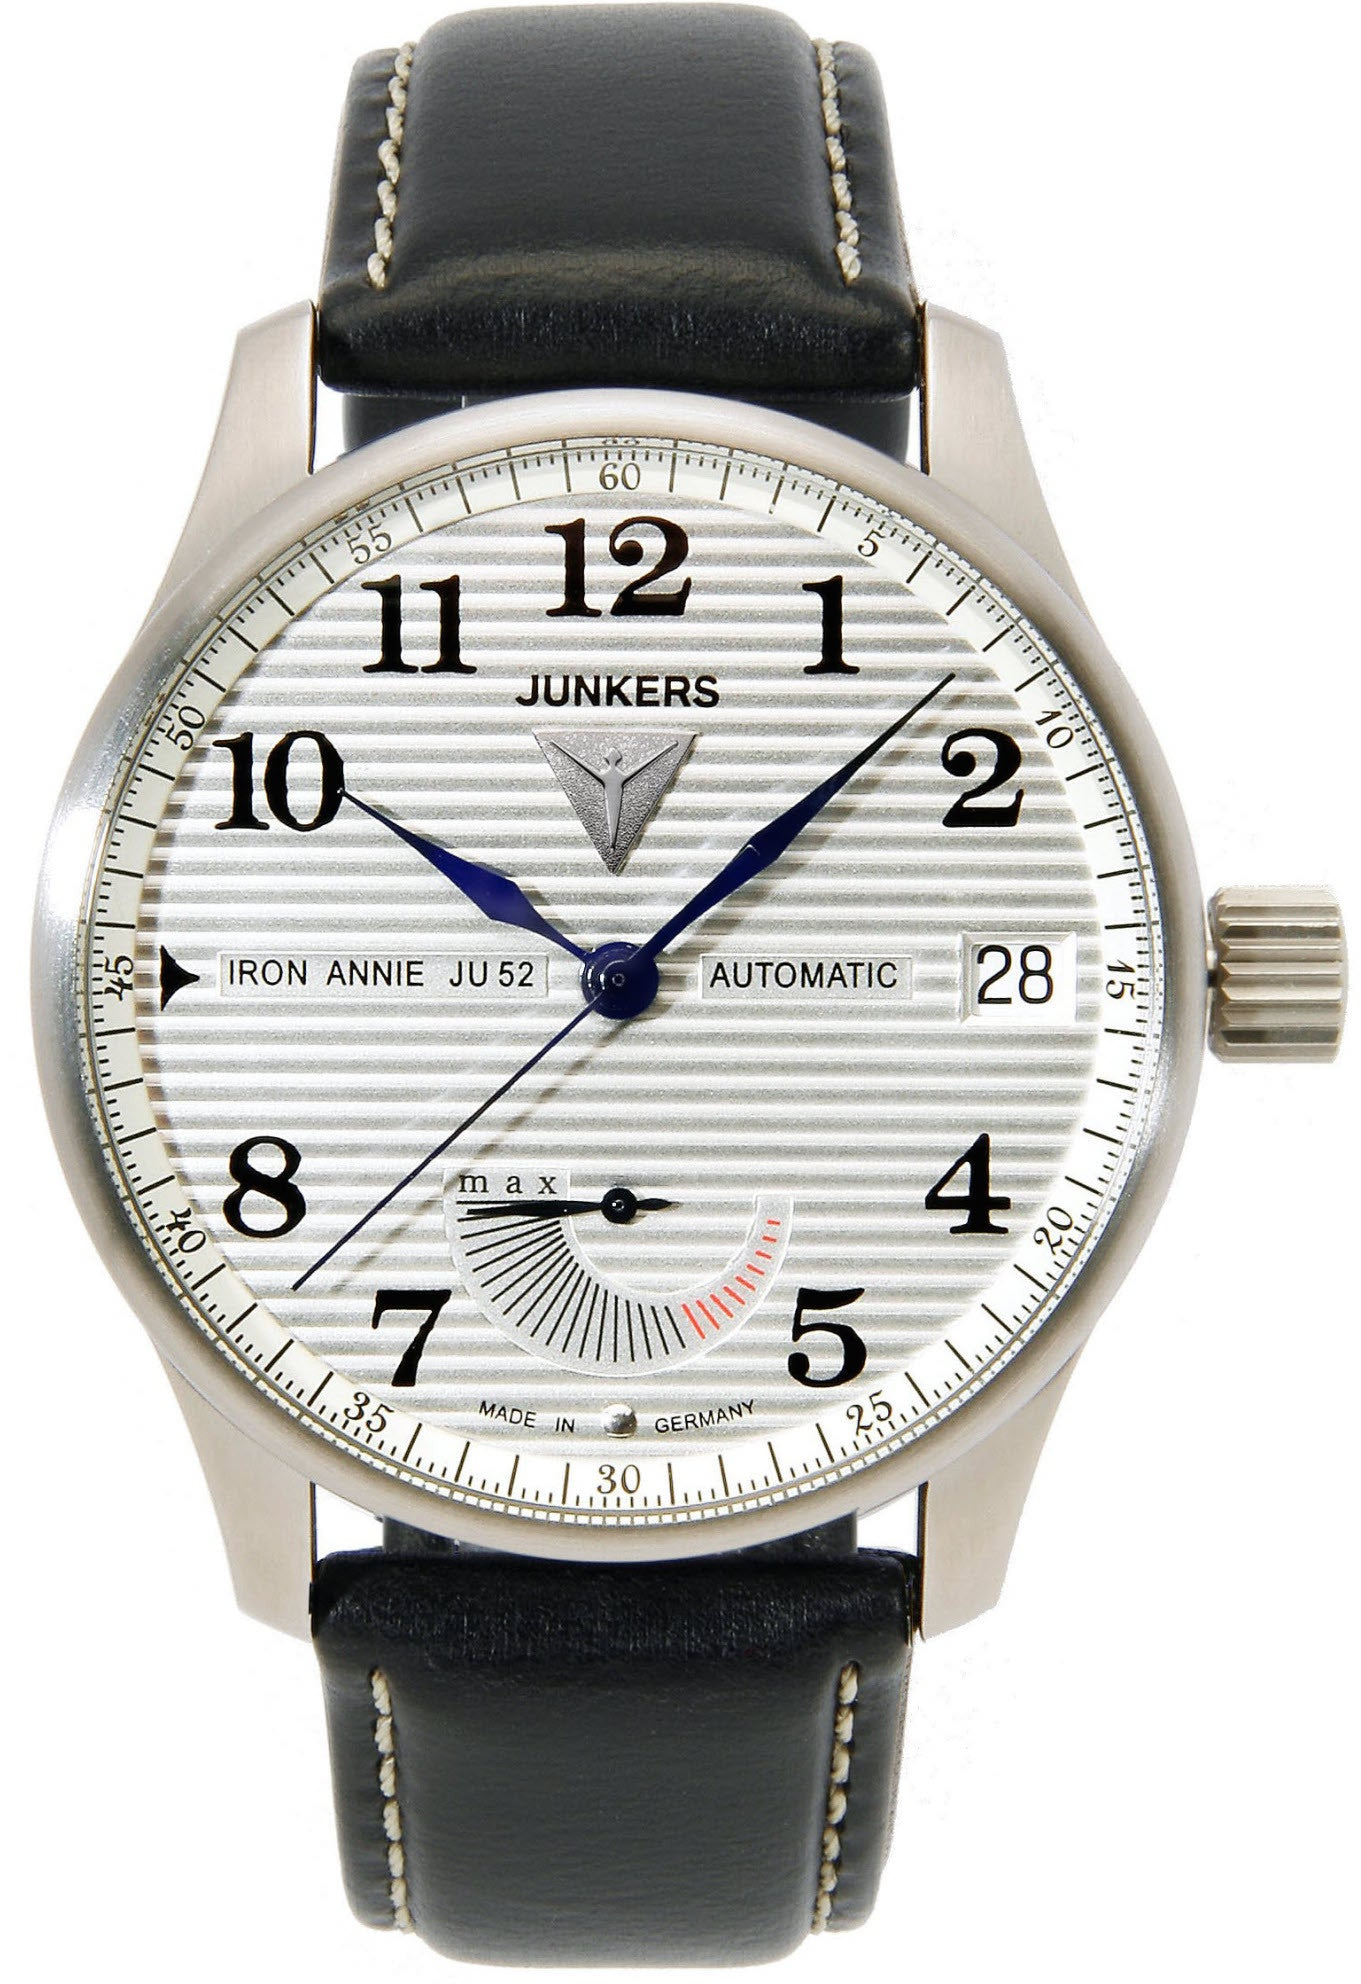 Junkers Watch Iron Annie JU52 Chronometer Glashuette